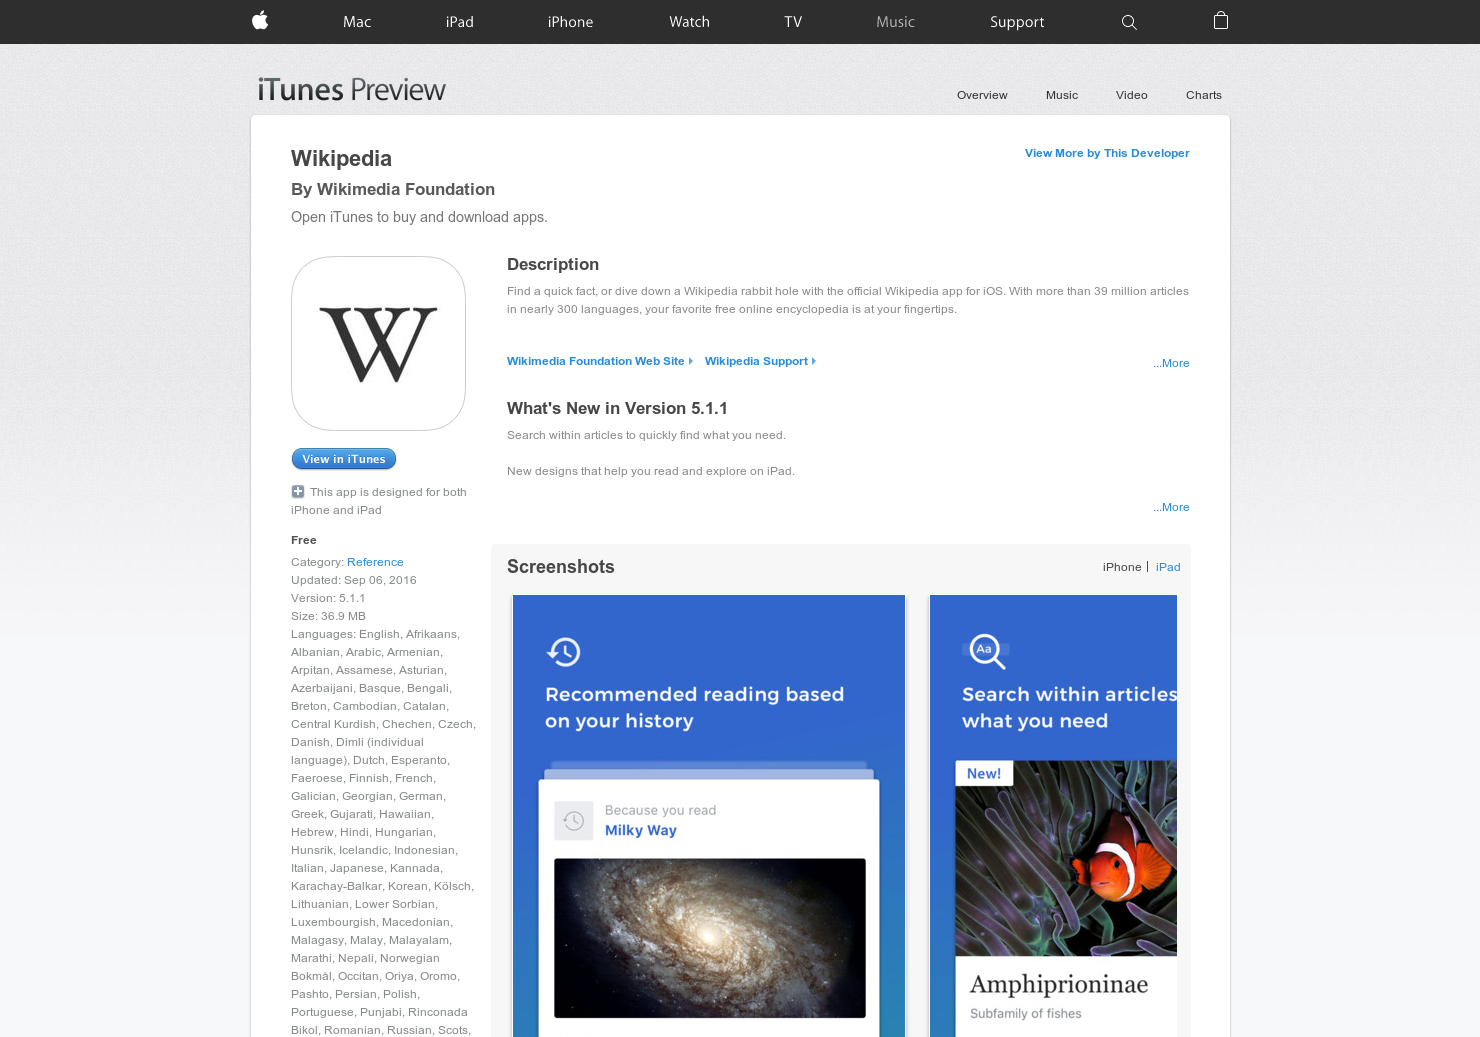 Wikipedia for iOS - Official Wikipedia App for iOS v4 | Product